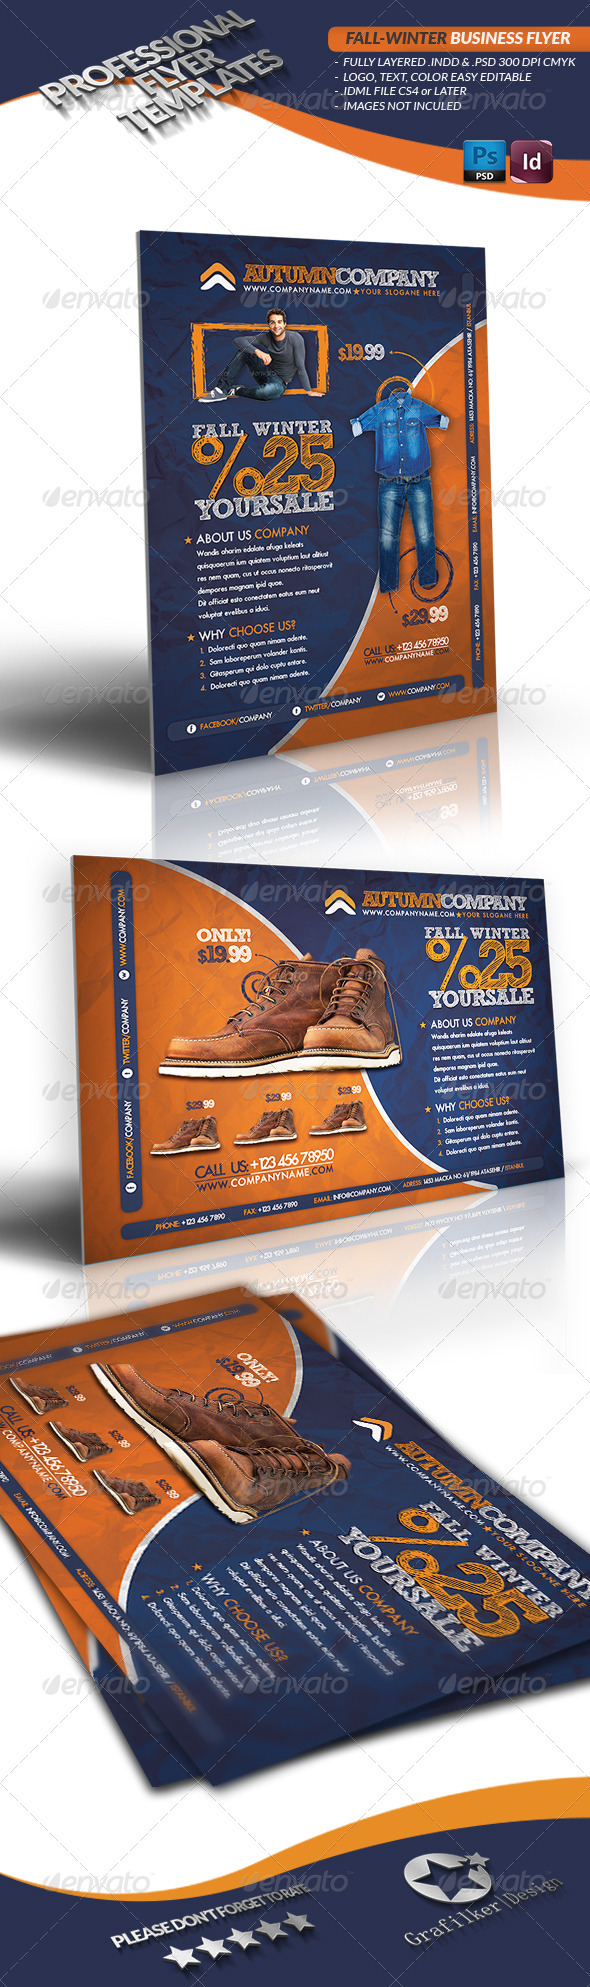 Fall Winter Business Flyer - Corporate Flyers